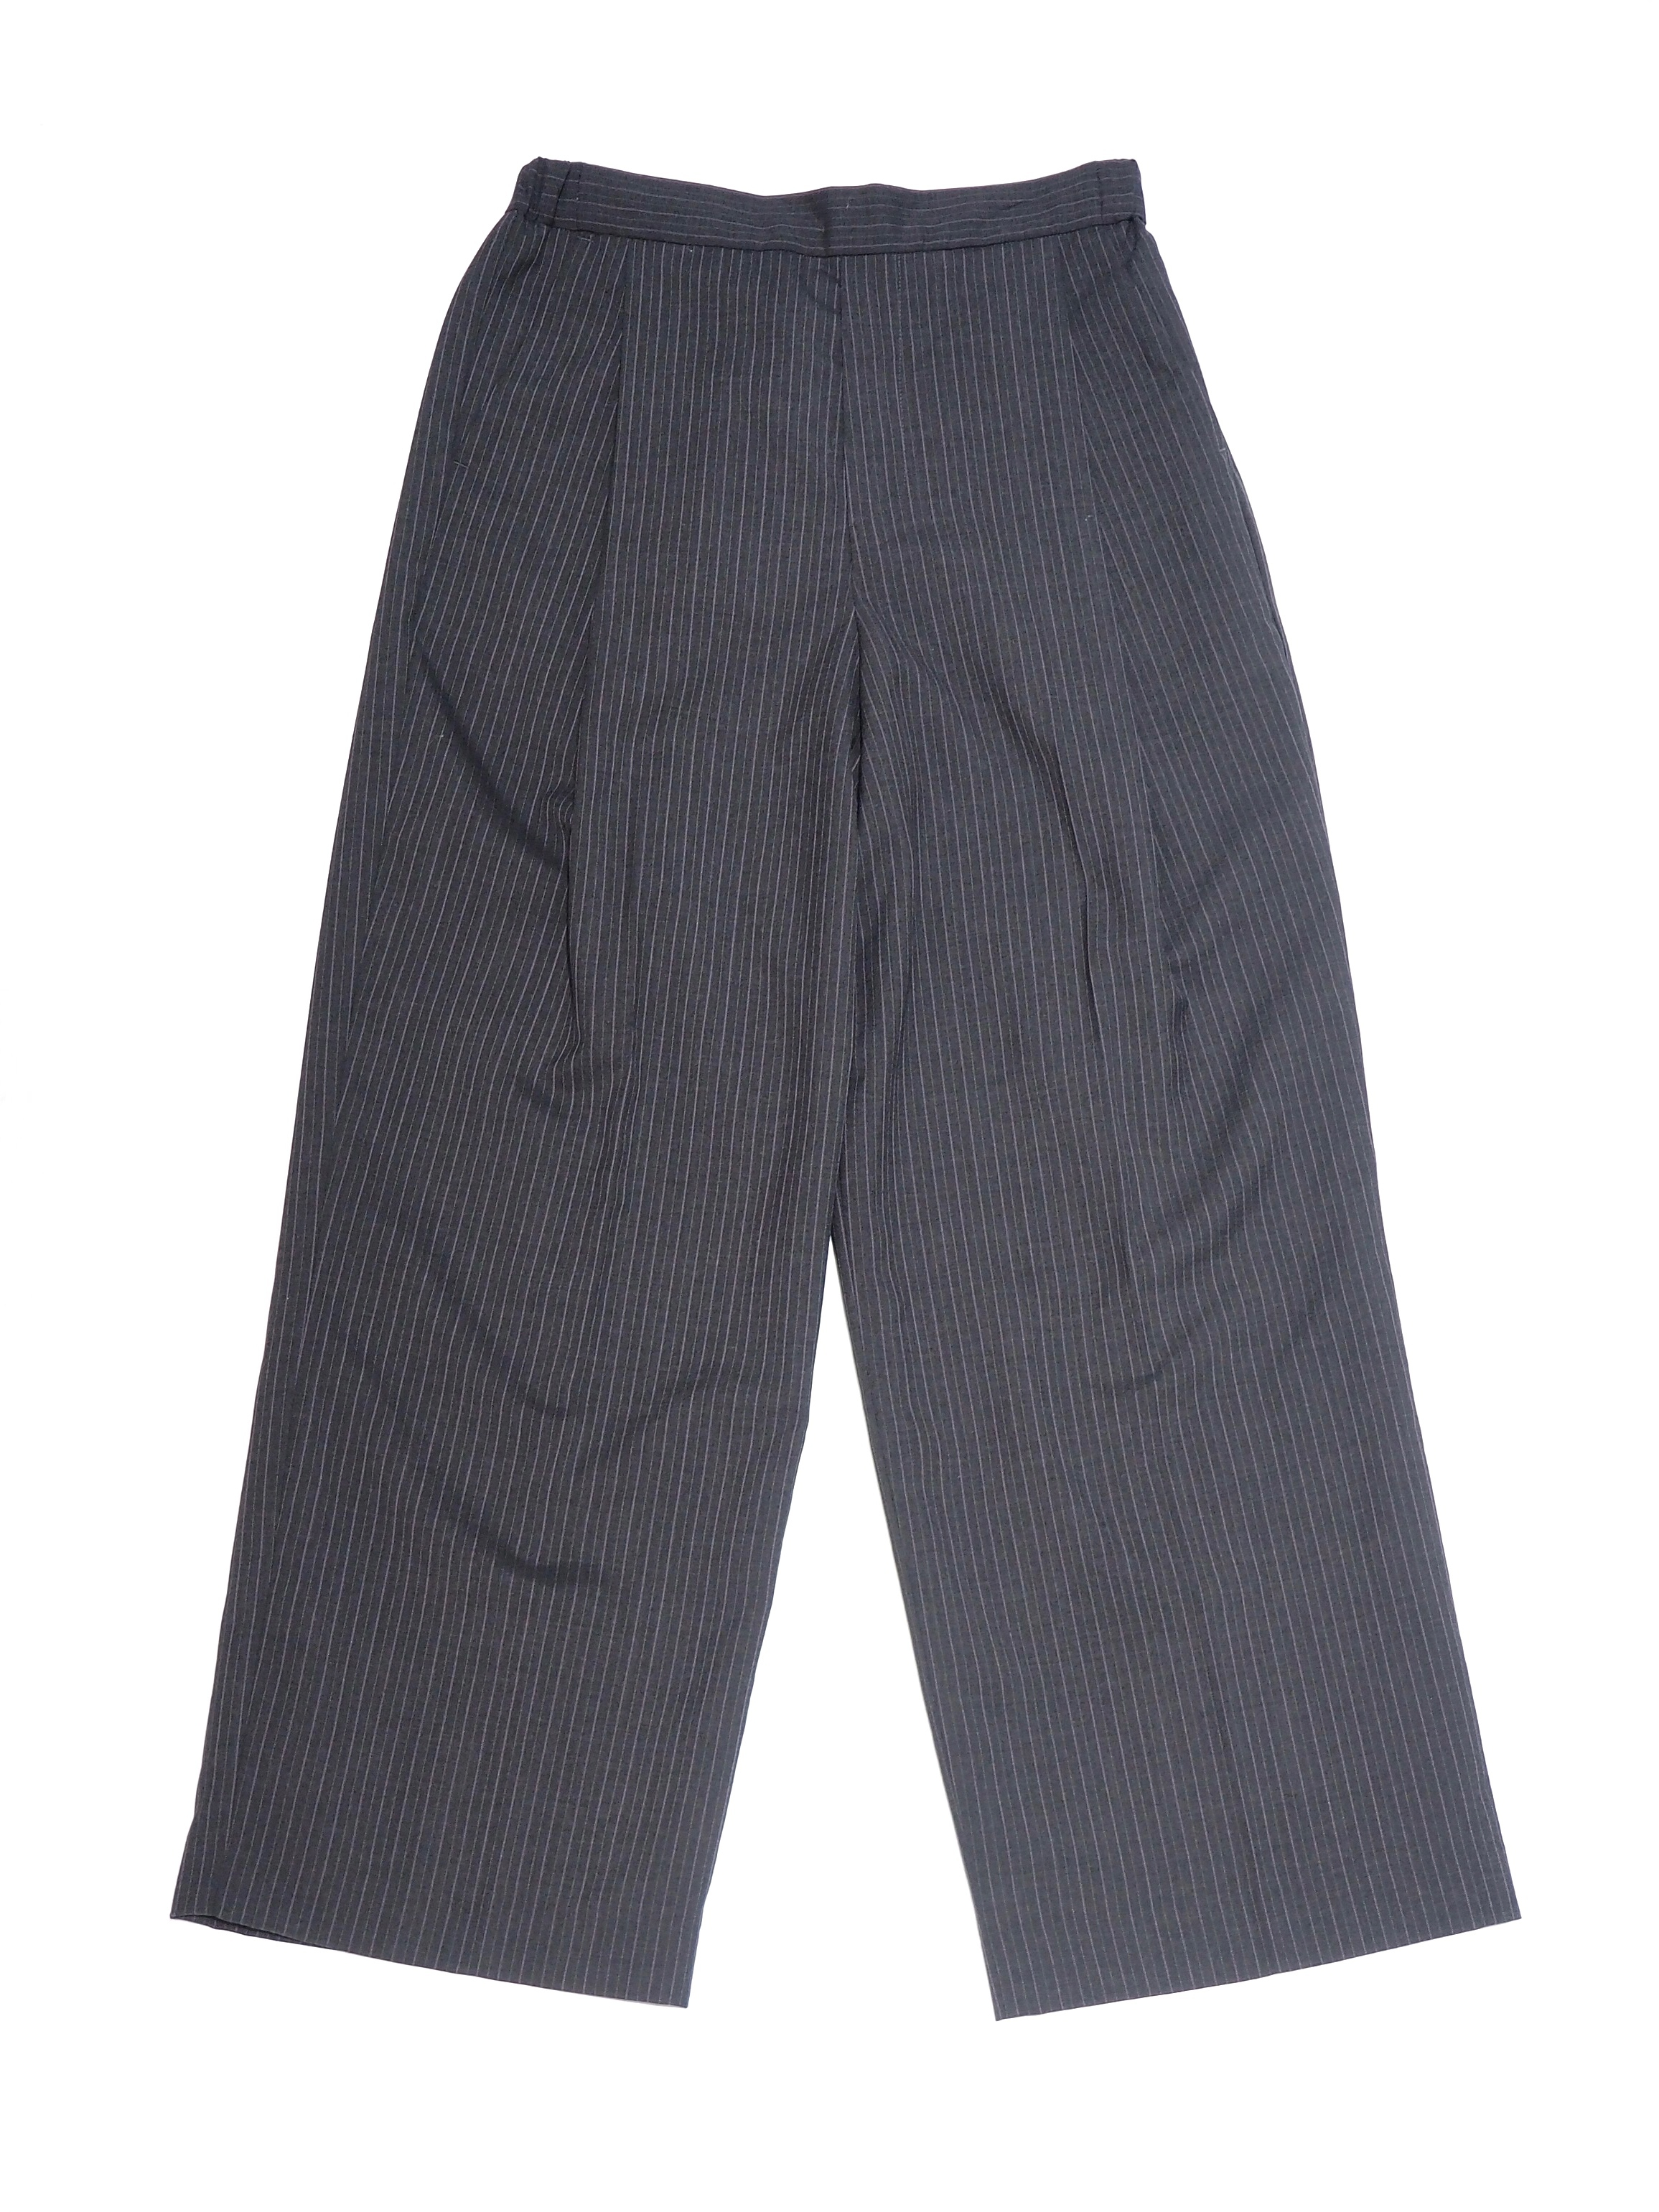 【ENLIGHTENMENT】STRIPE WIDE PANT